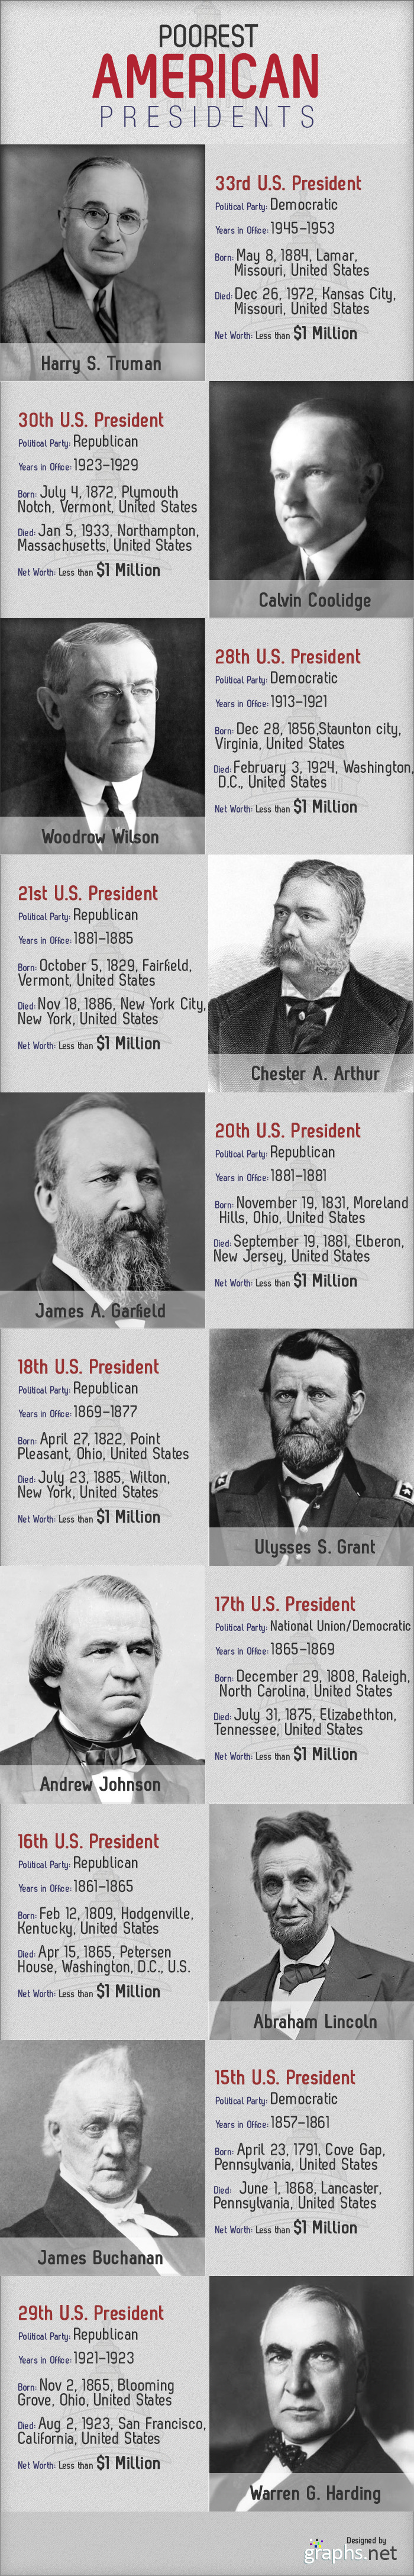 Poorest American Presidents